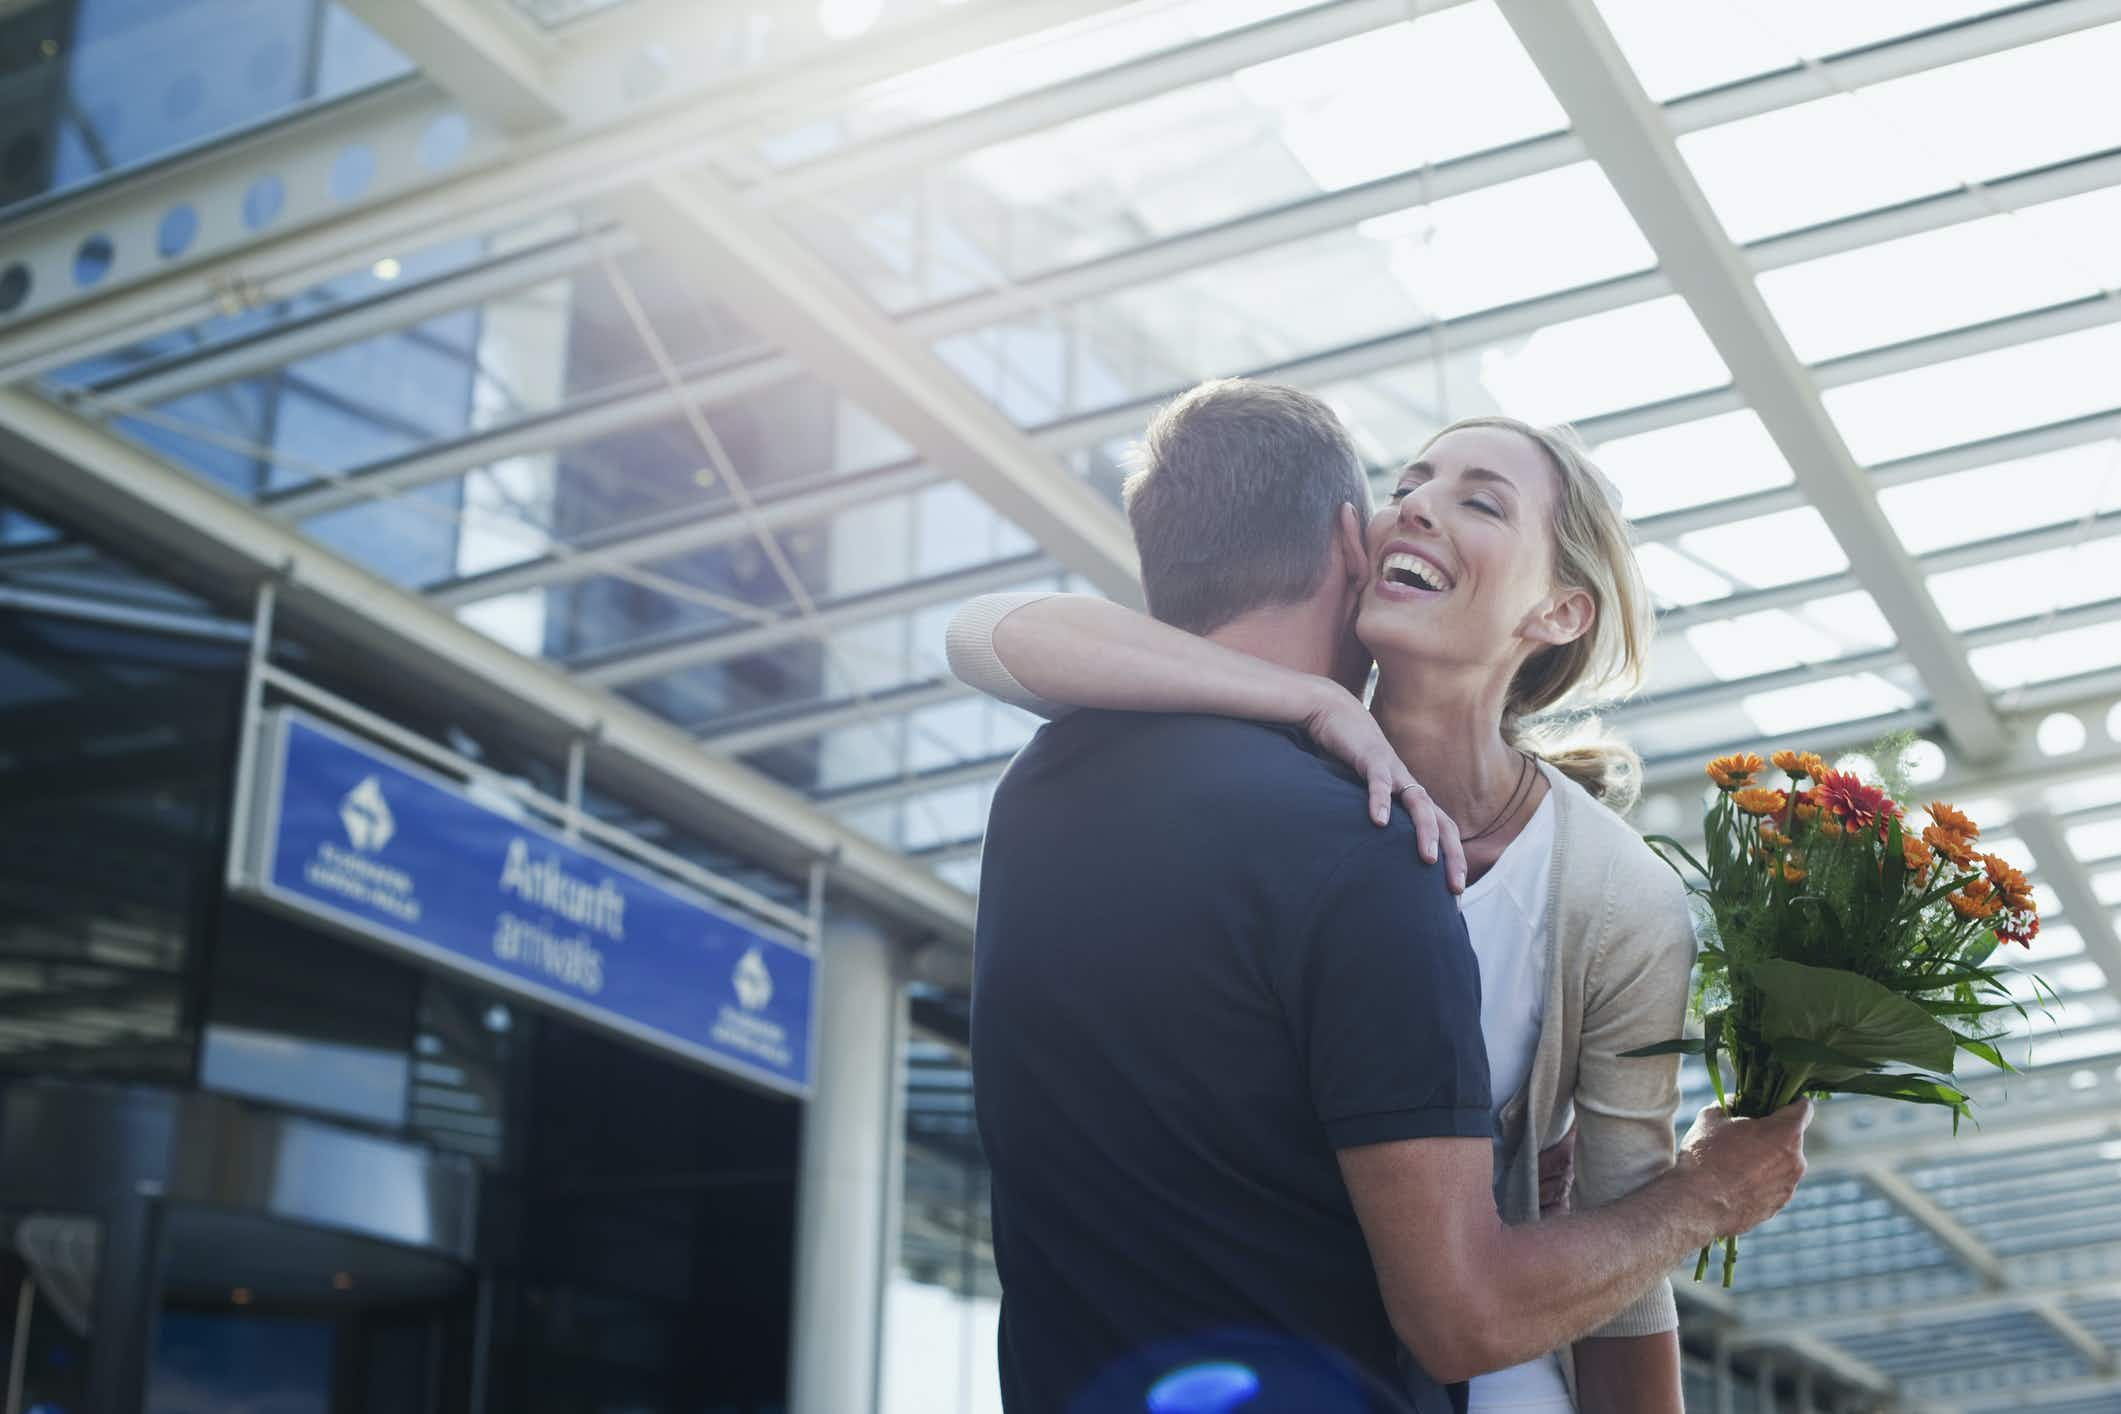 Long-distance relationship? A new tool can help you find the cheapest city to meet